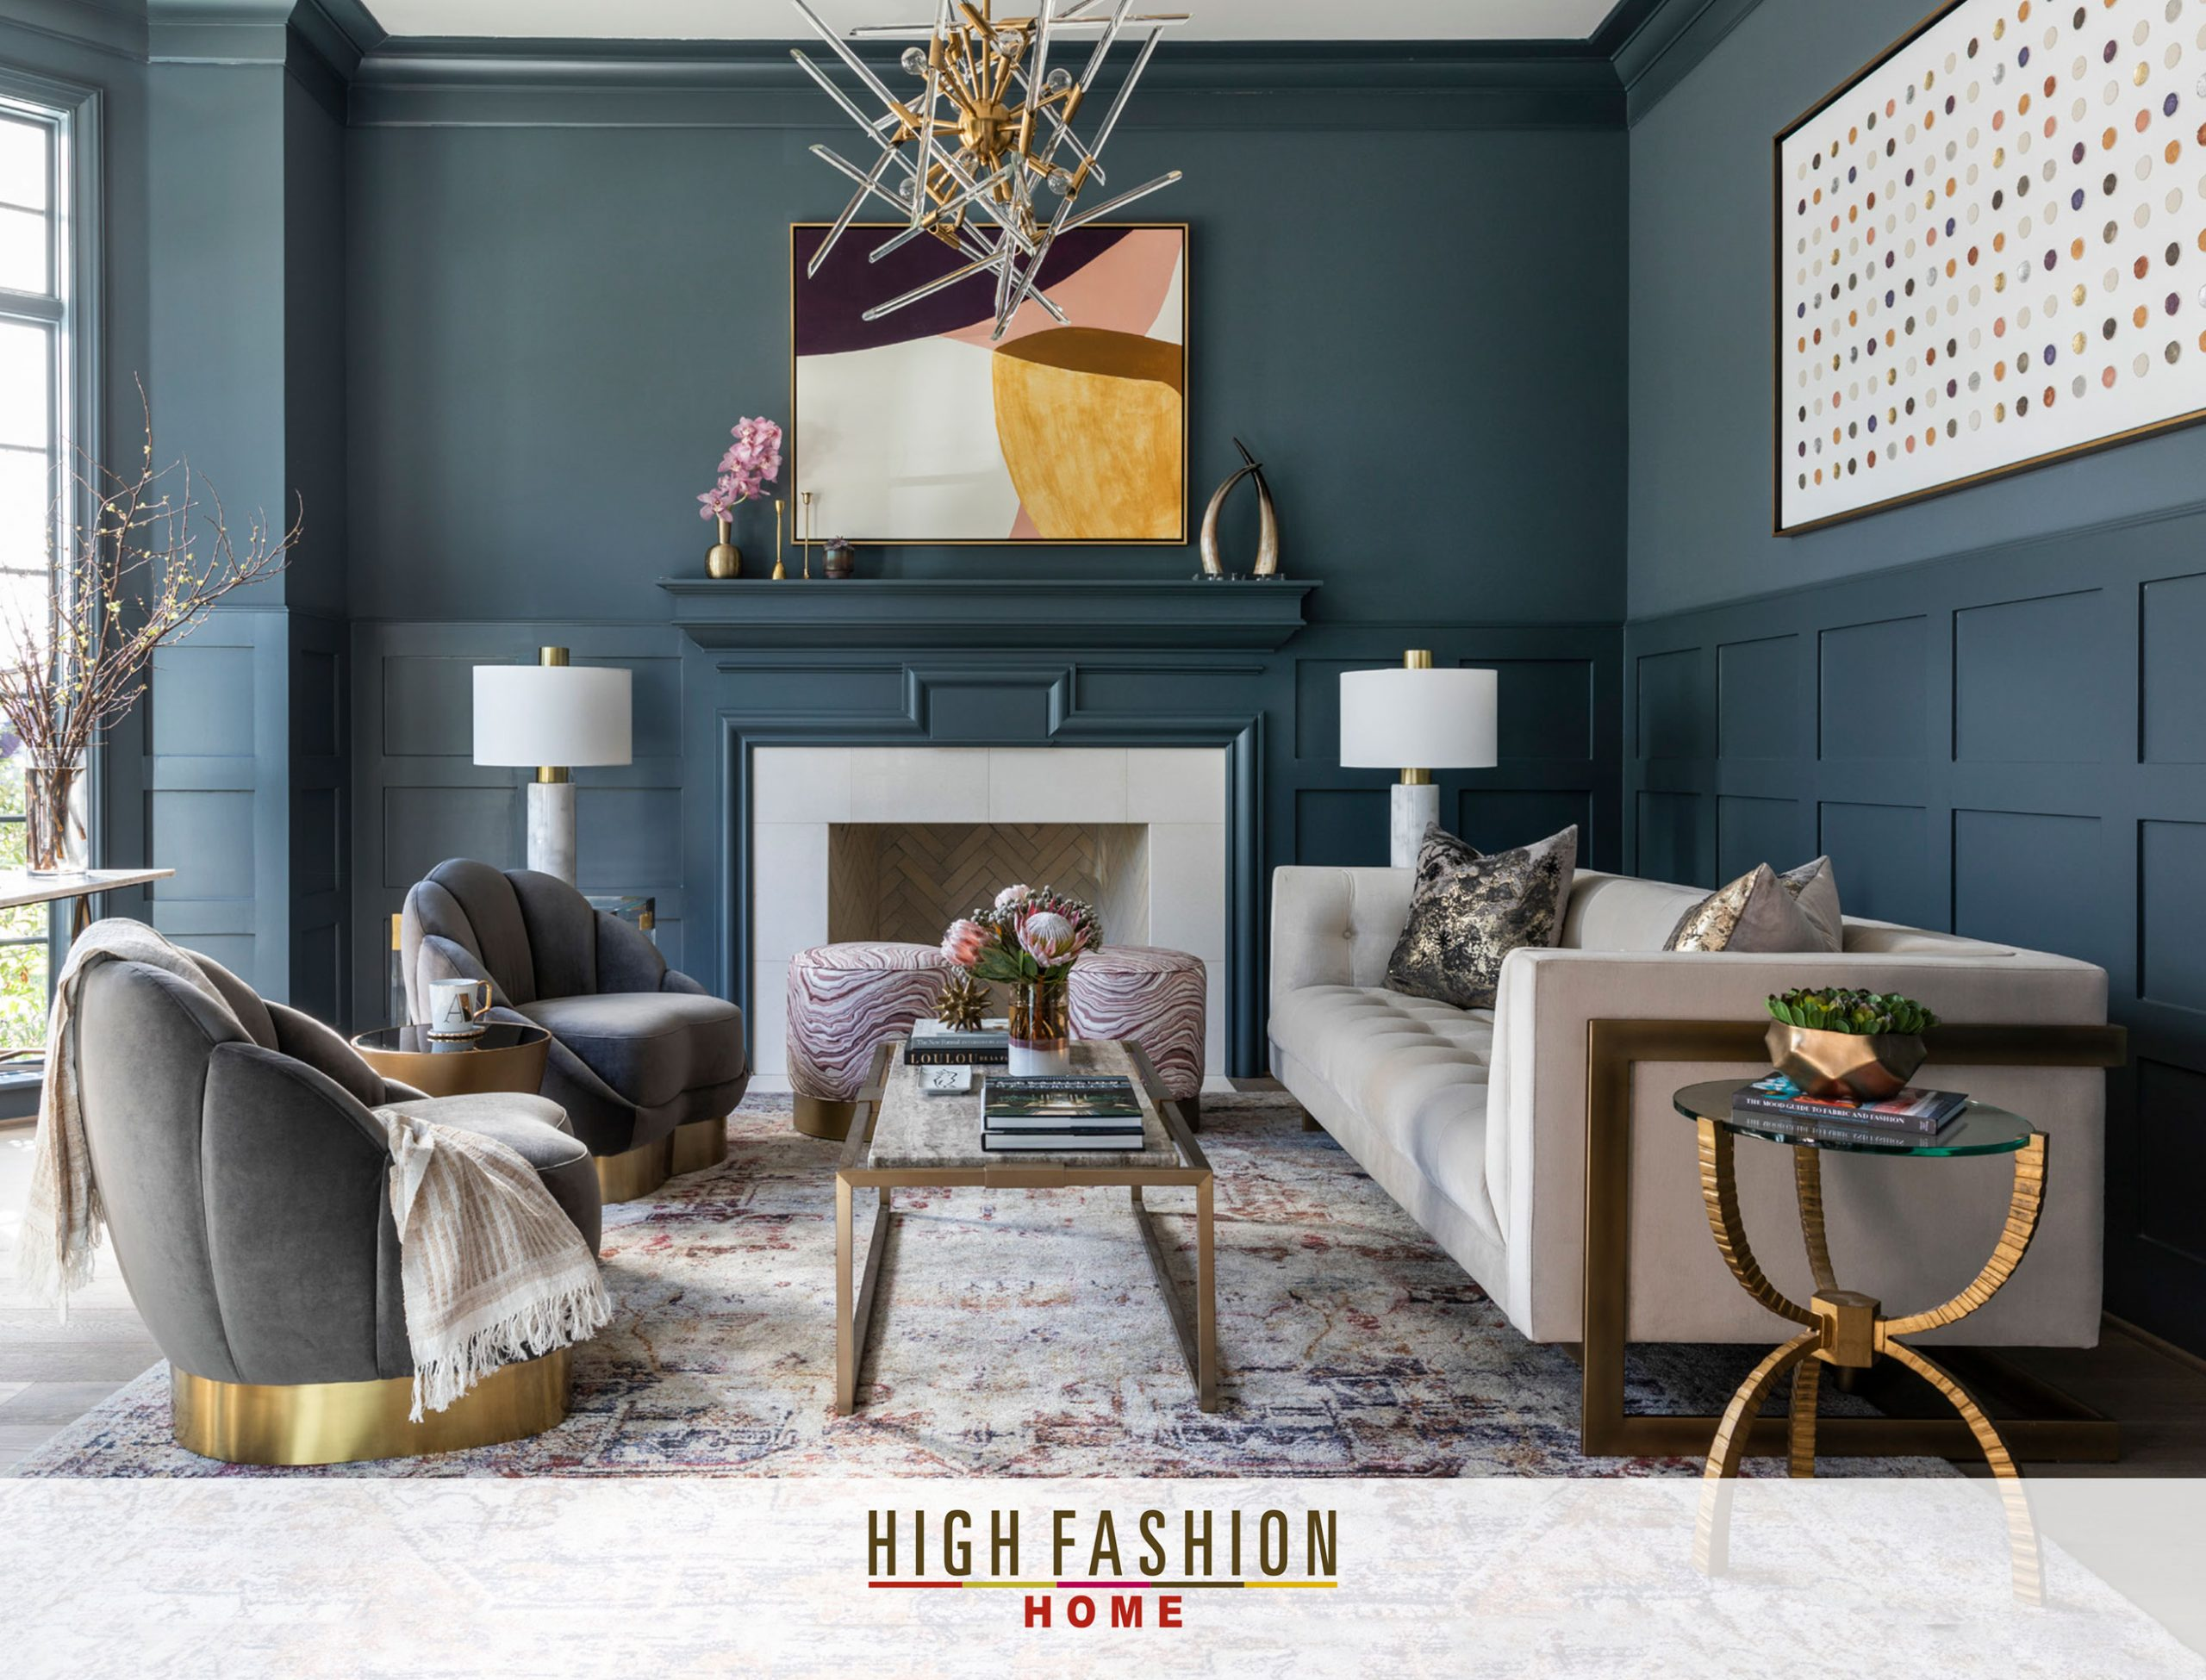 High Fashion Home - Ad Photography - Julie Soefer Photography